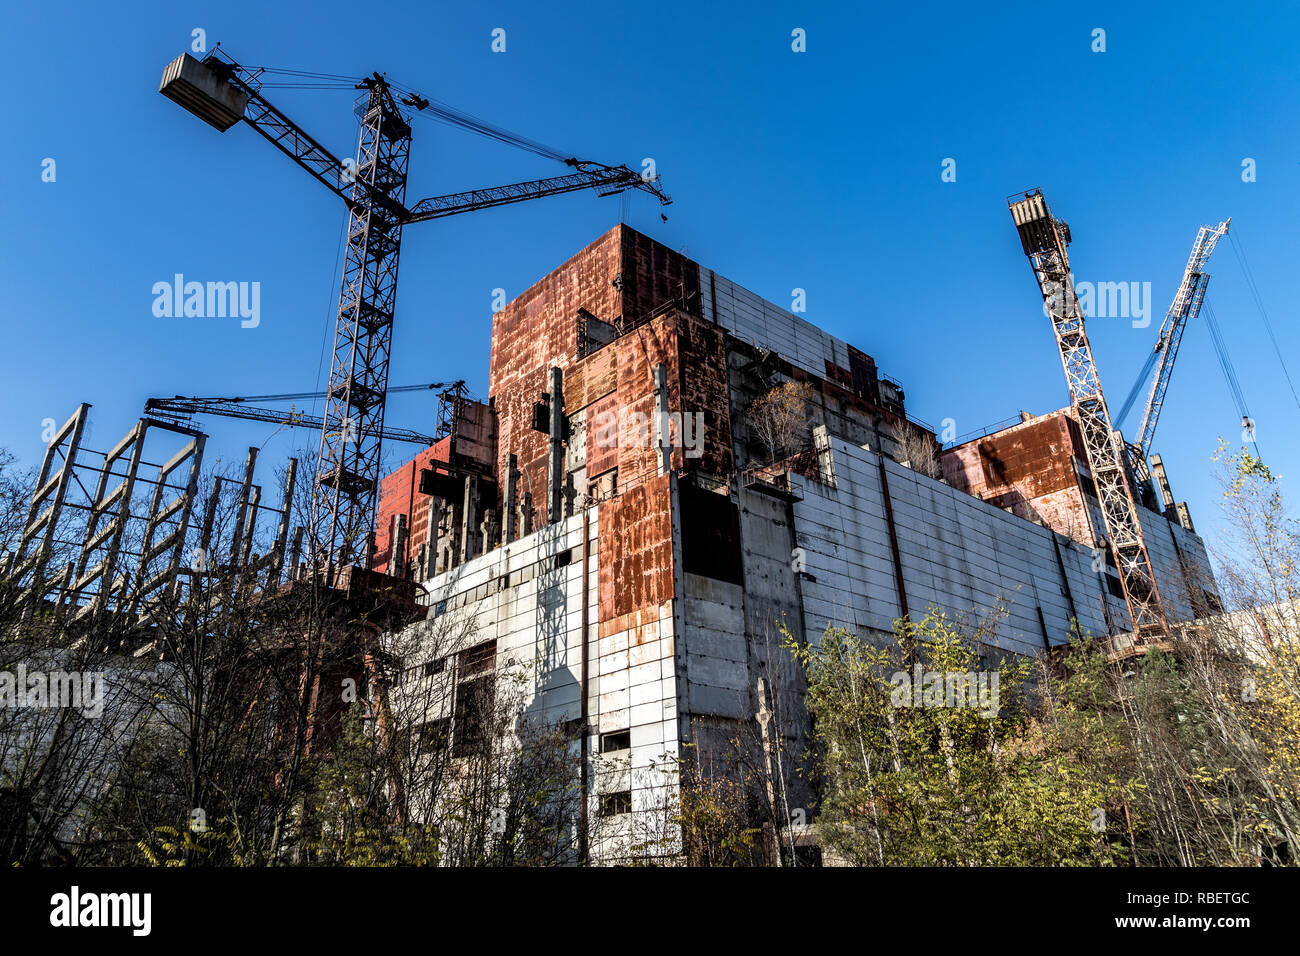 Pictures from Chernobyl, Ukraine Stock Photo